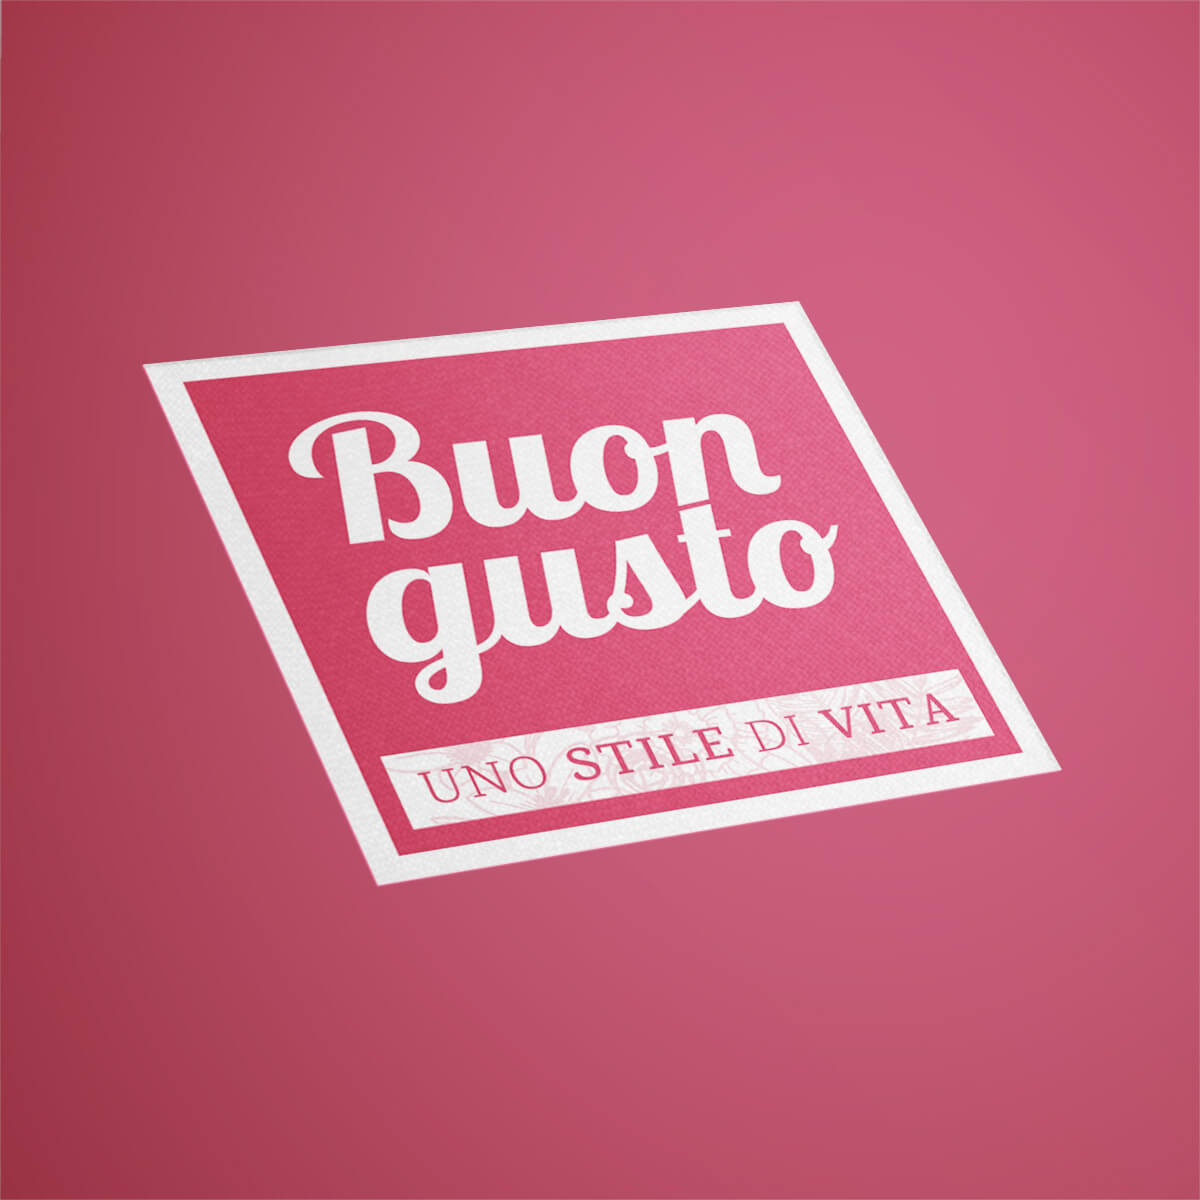 Decor - evento - Buongusto